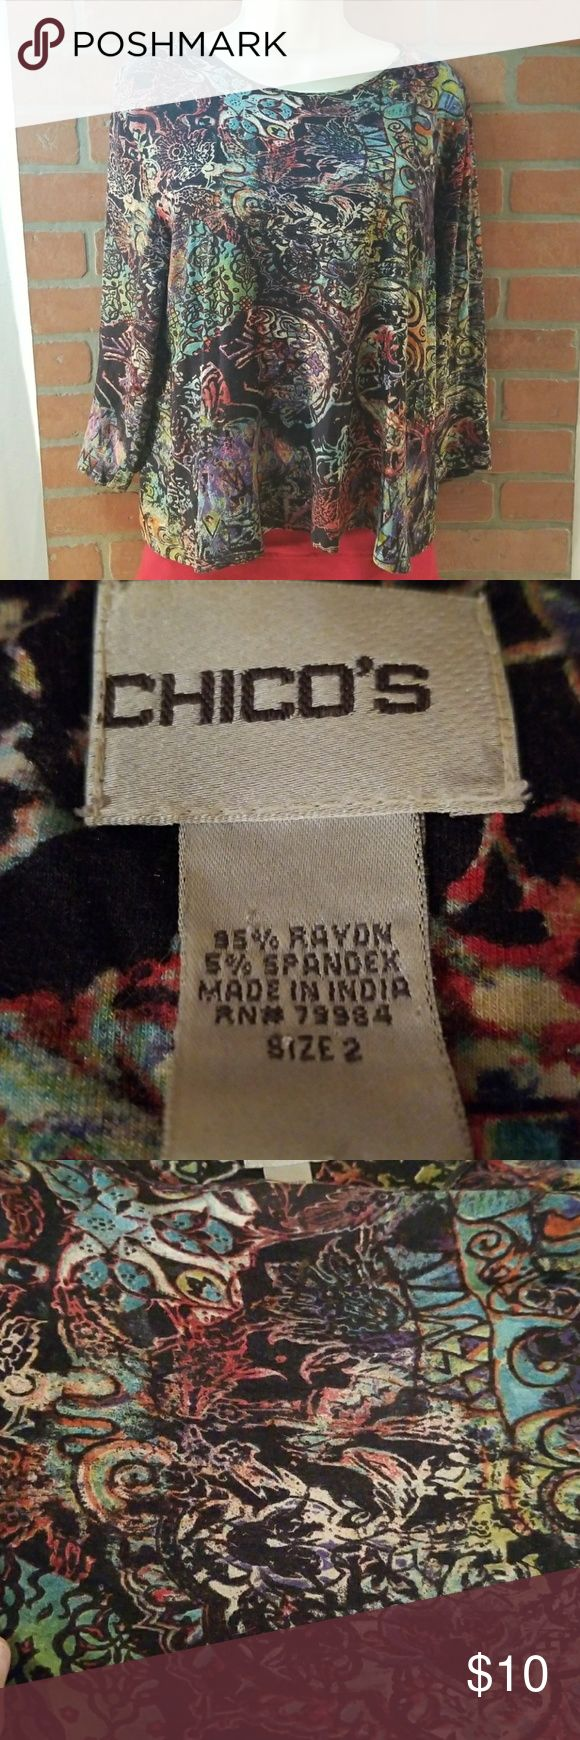 Chico's Multi Colored women sz 2 long sleeve top Gorgeous colorful top. No stains and in EUC.  Chest 22 Length 22 Chico's Tops Tees - Long Sleeve